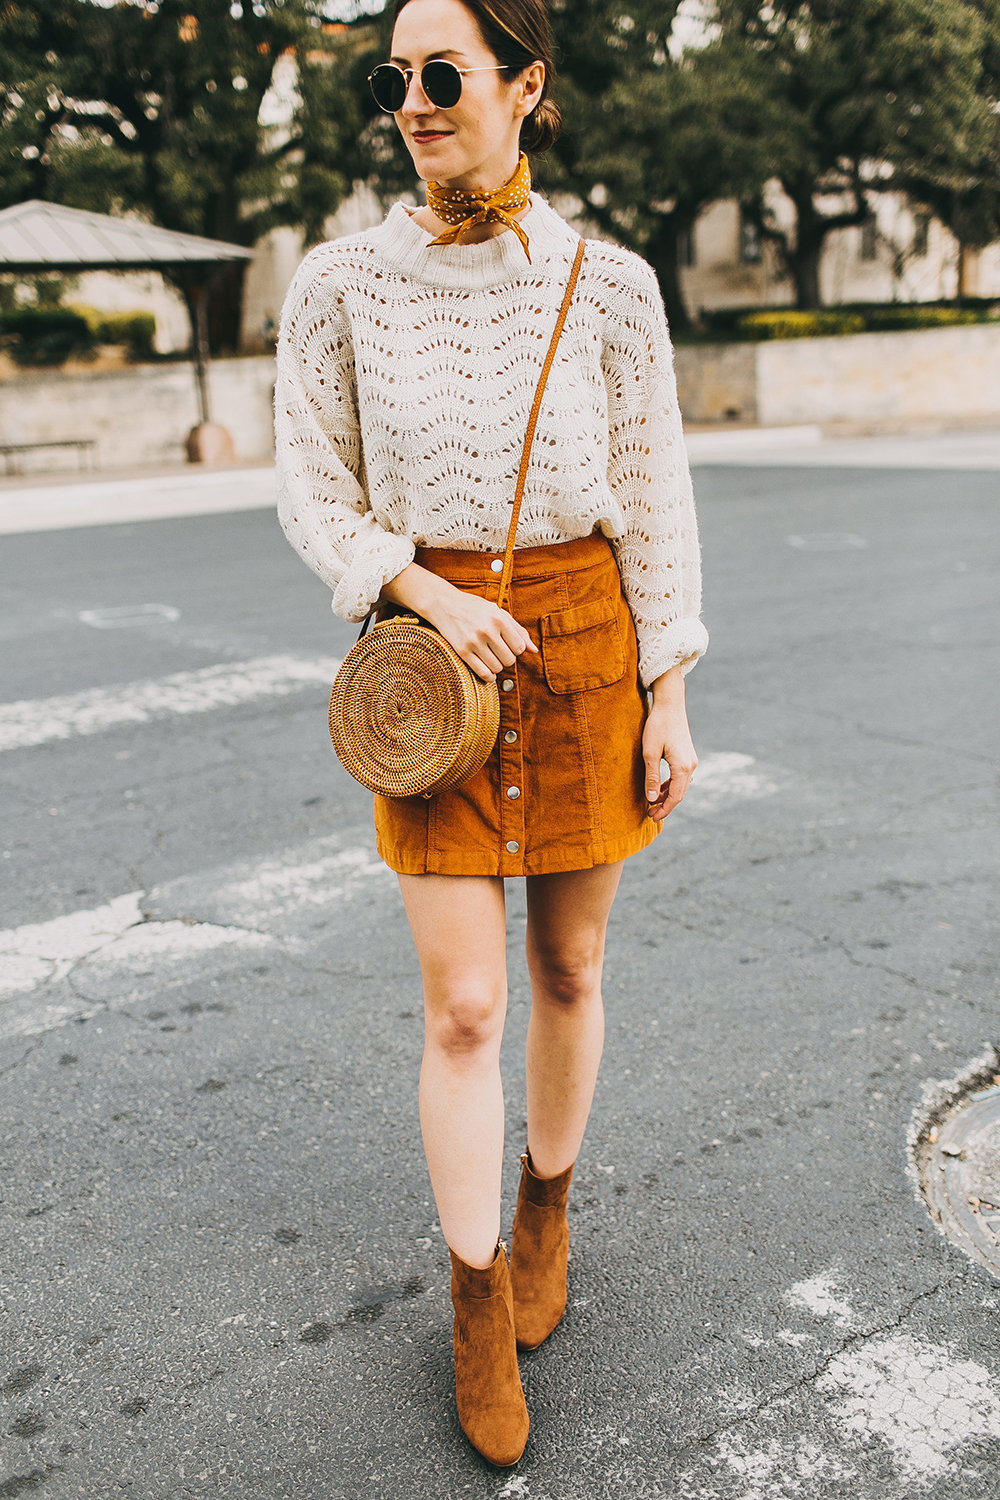 livvyland-blog-olivia-watson-austin-texas-fashion-style-blogger-burnt-orange-corduroy-skirt-bdg-a-line-outfit-5